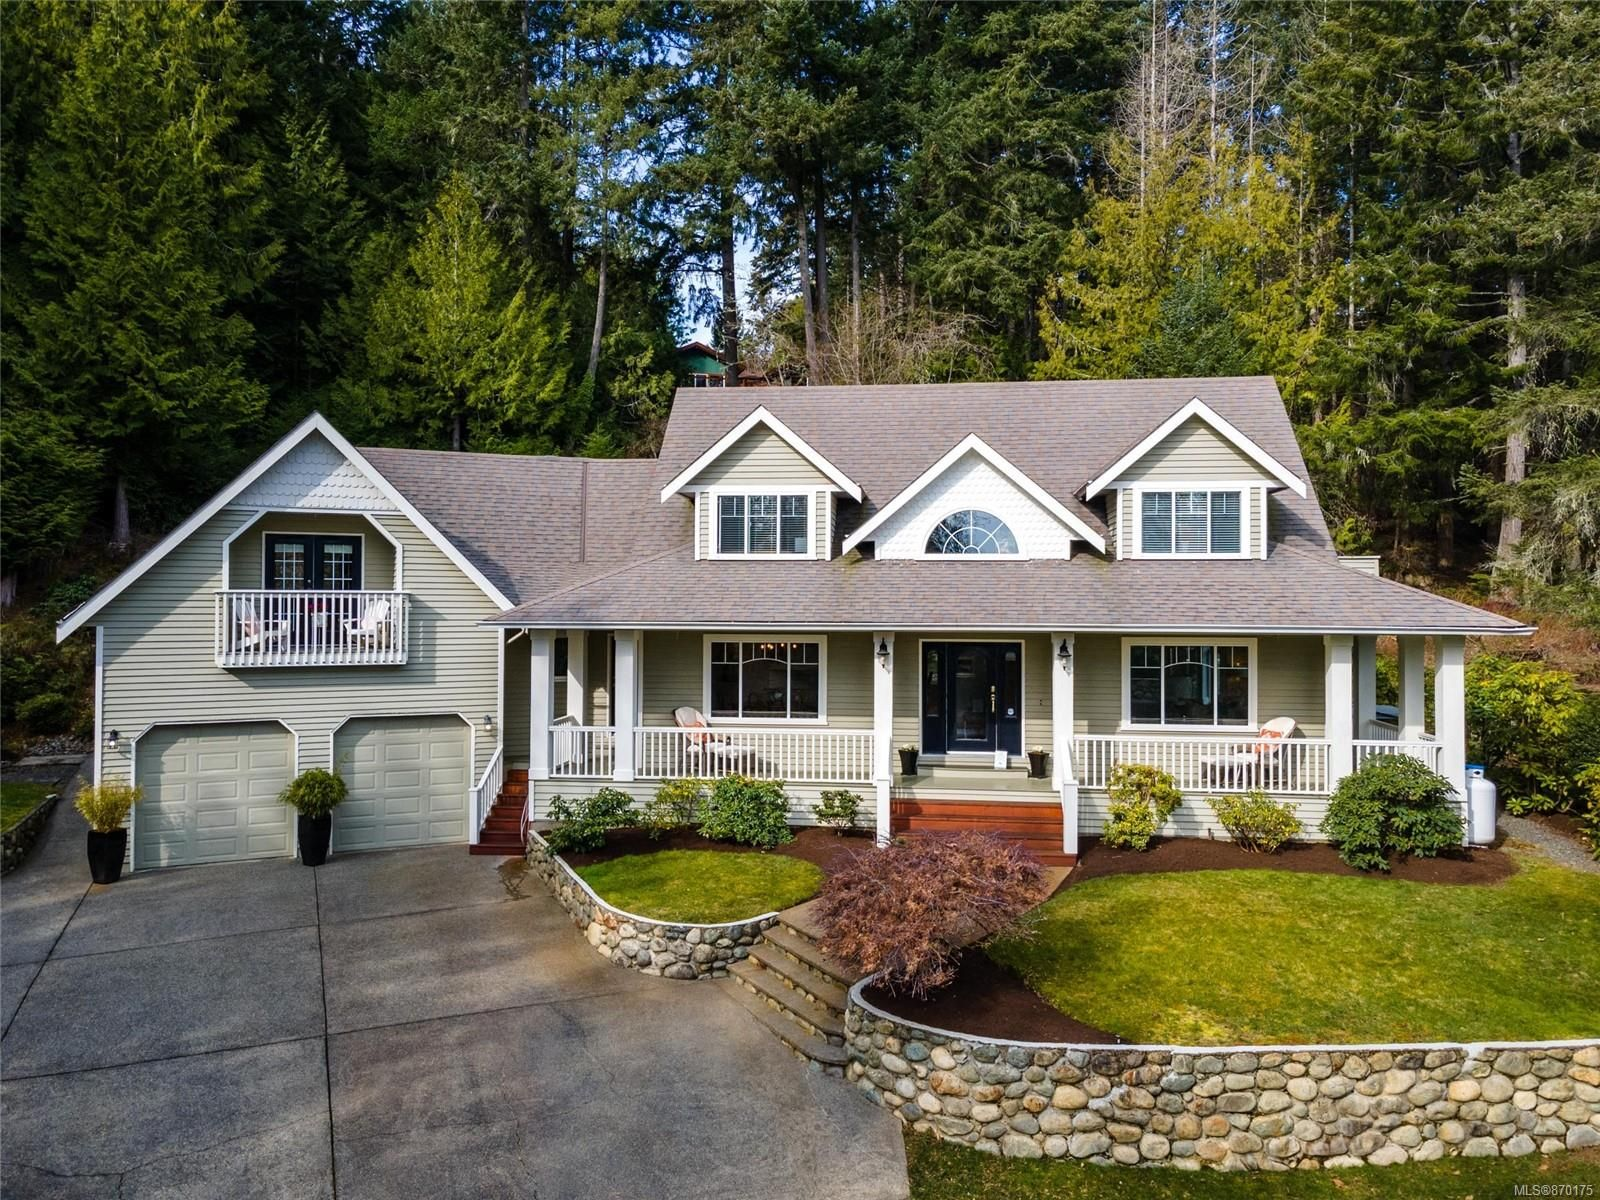 Main Photo: 635 Steamer Dr in : CS Willis Point House for sale (Central Saanich)  : MLS®# 870175